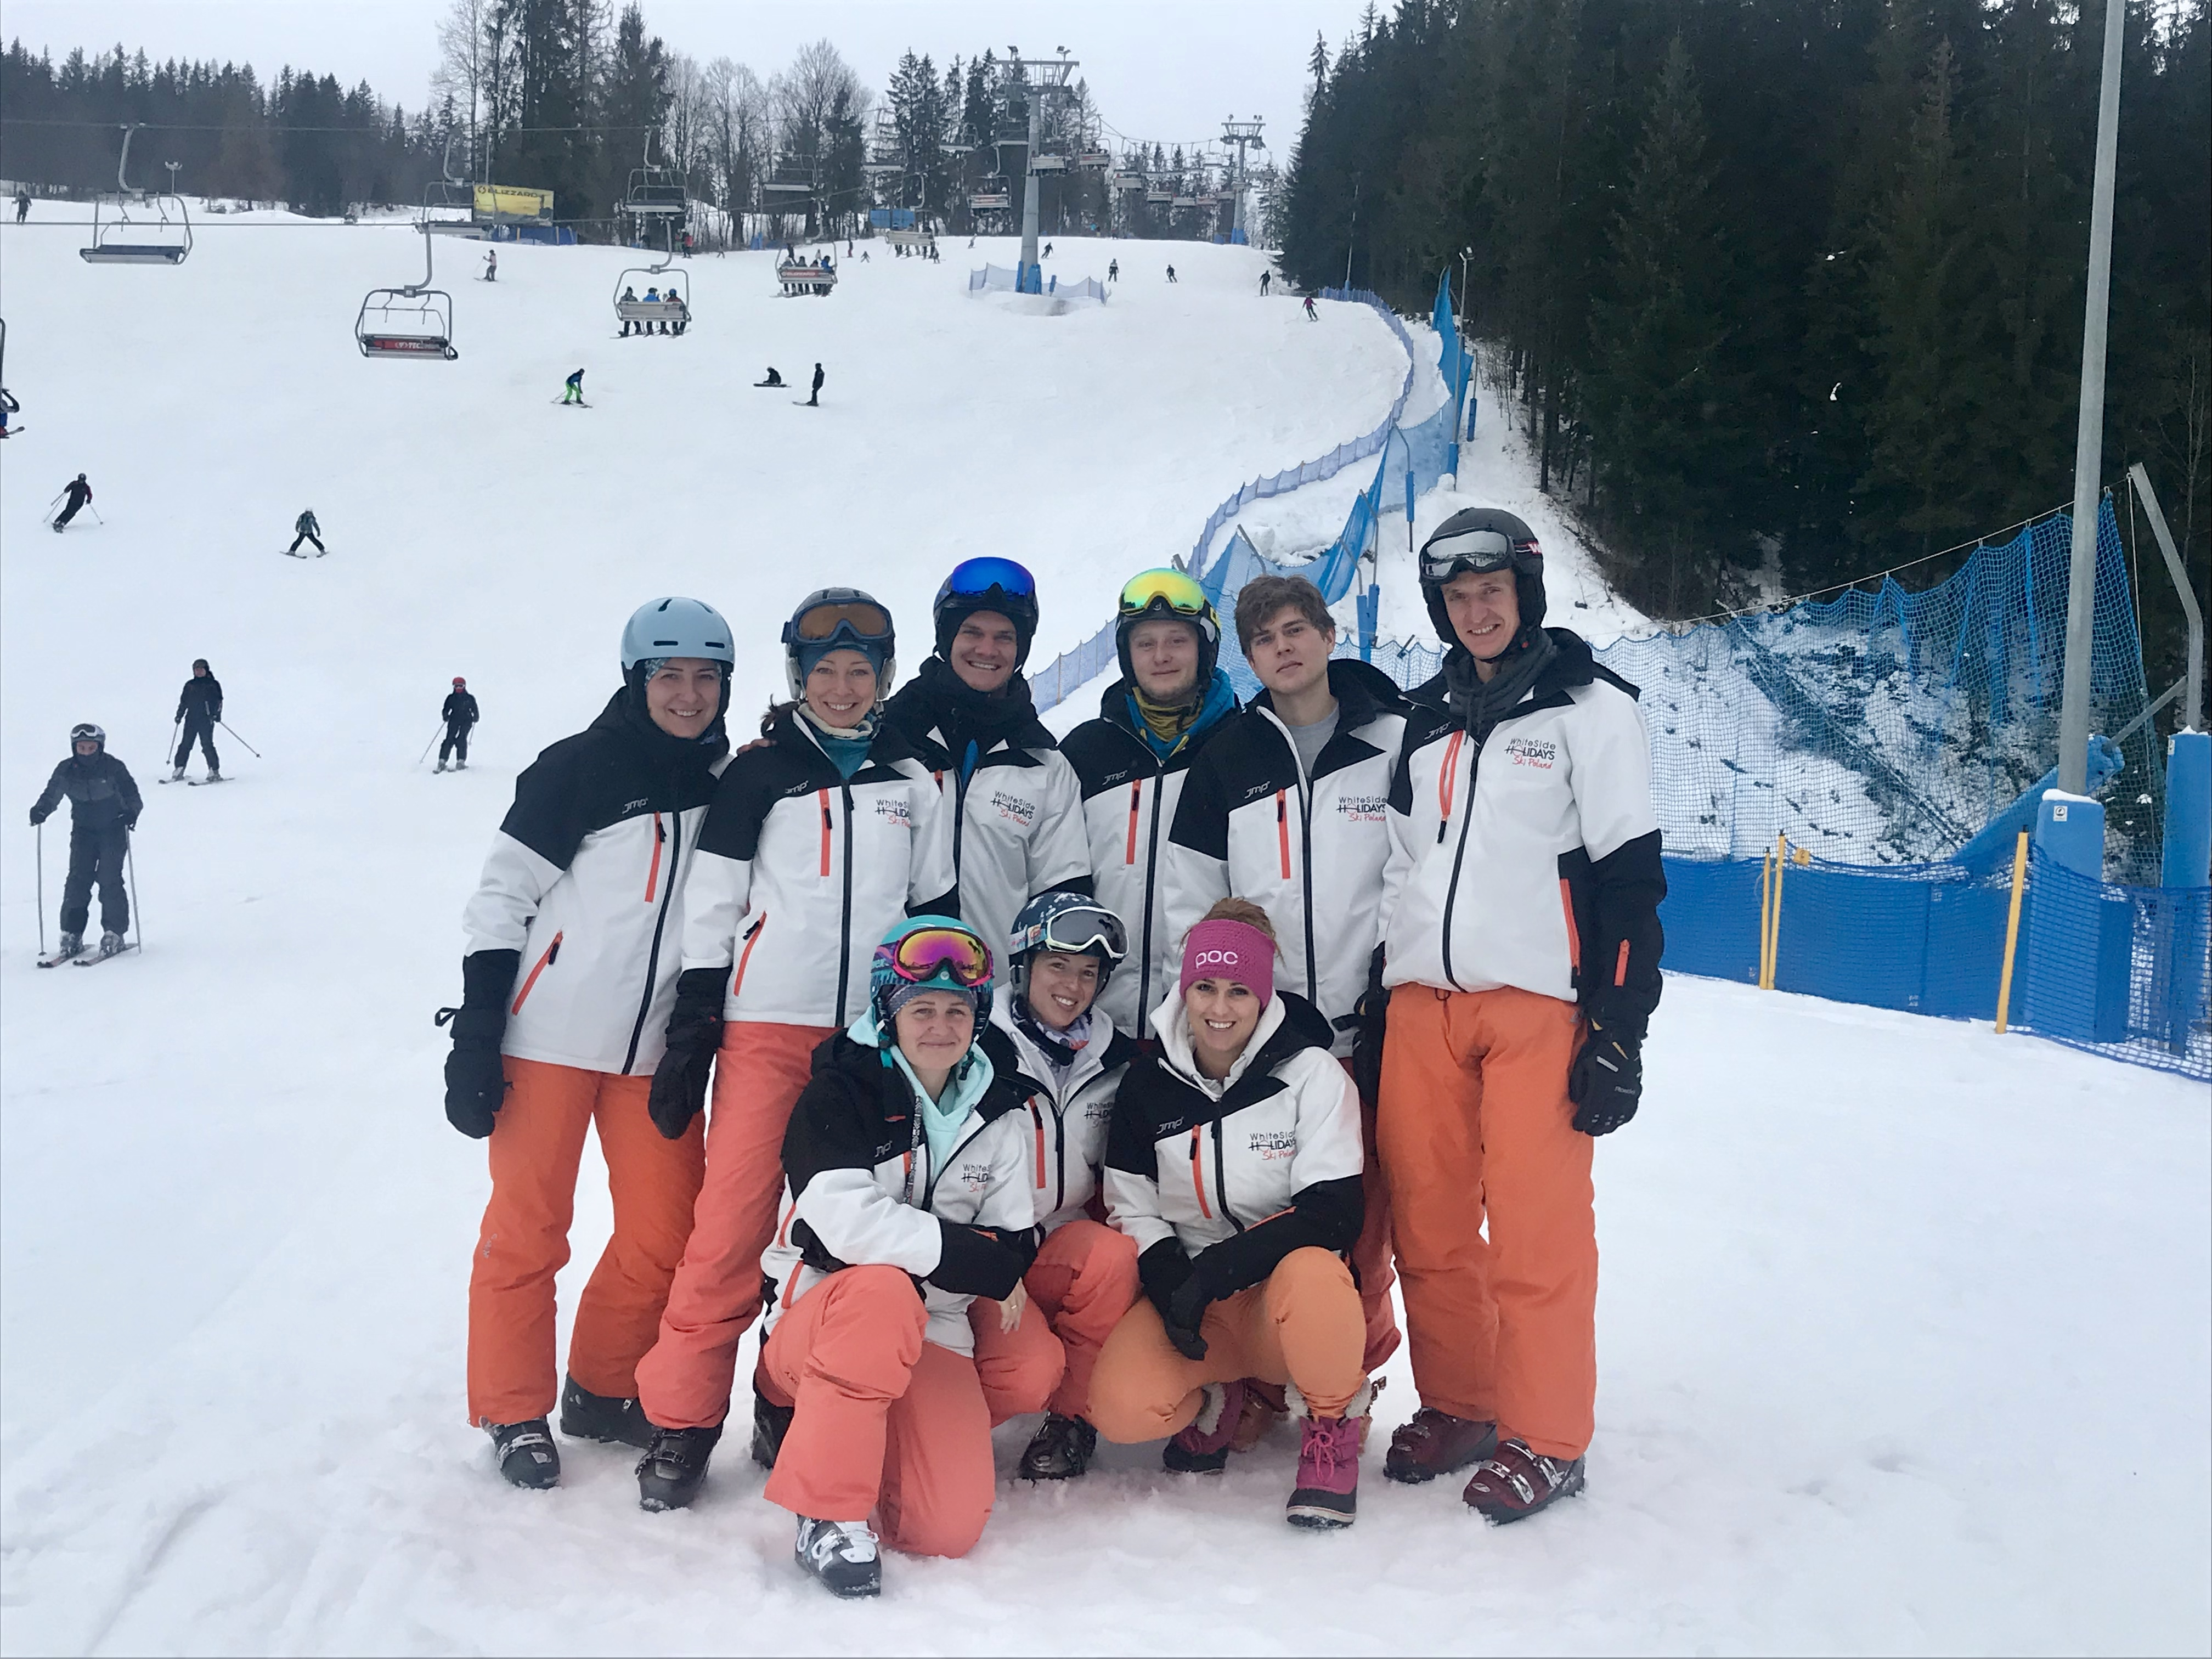 A quick team photo in Zakopane with some of our ski and snowboard instructors before the New Year\'s Eve celebrations begin